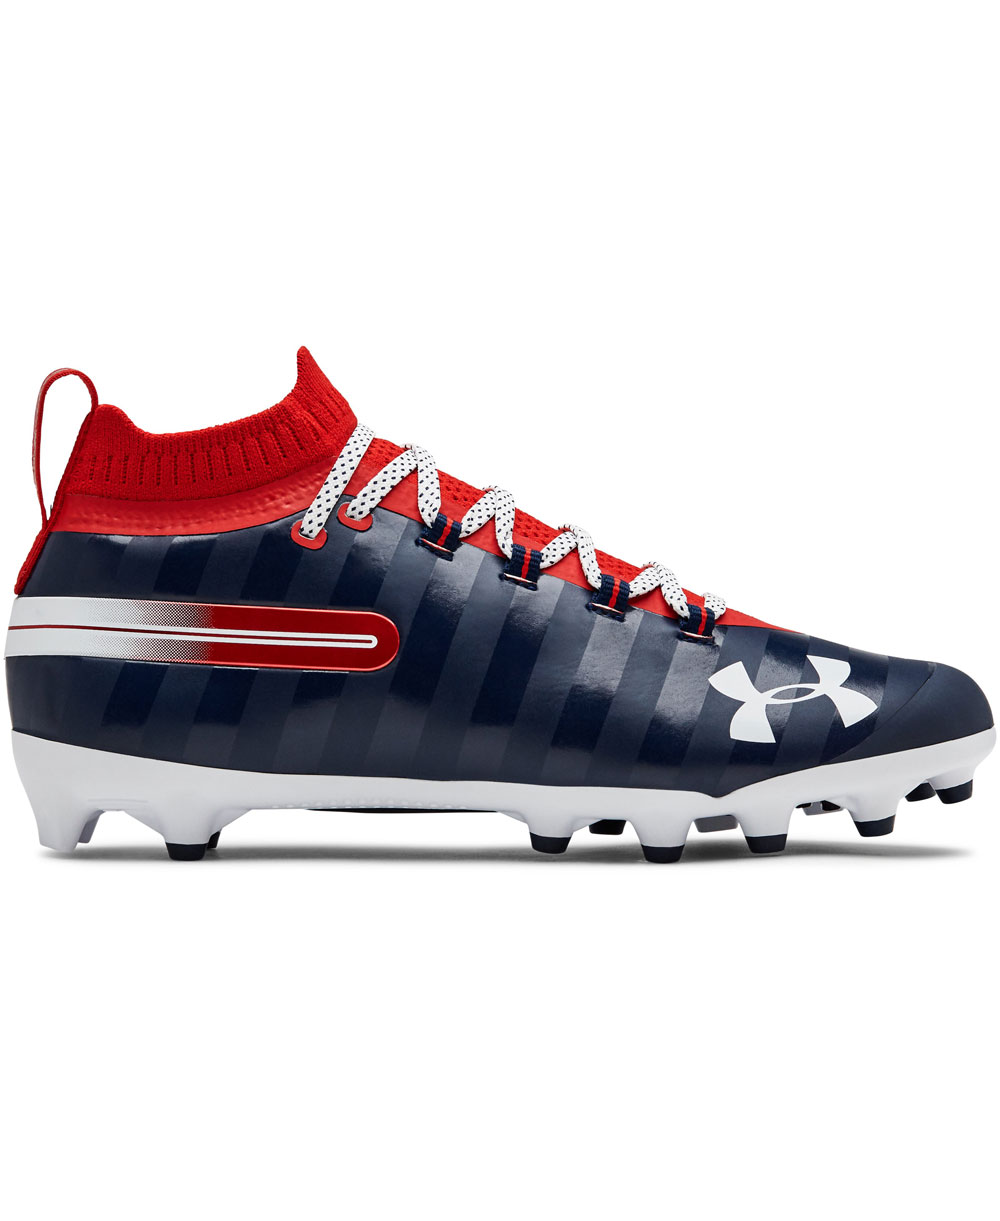 e6af3b2518 Men's Spotlight LE American Football Cleats Red/Academy